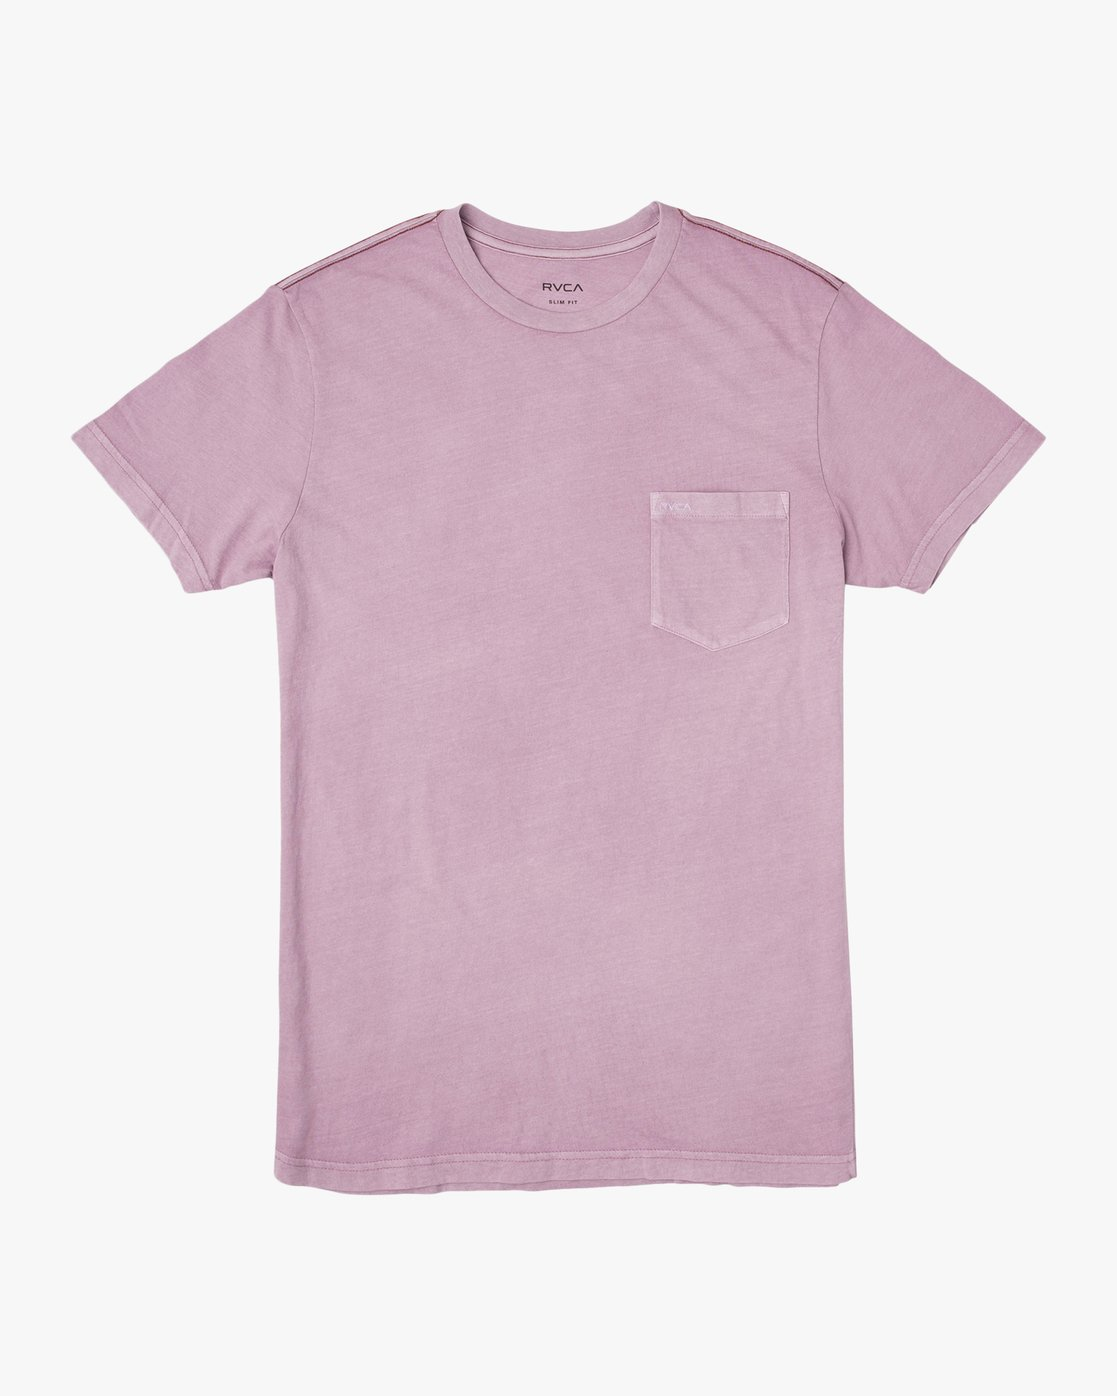 0 PTC 2 Pigment - Knit Top for Men Violett H1KTRCRVP8 RVCA